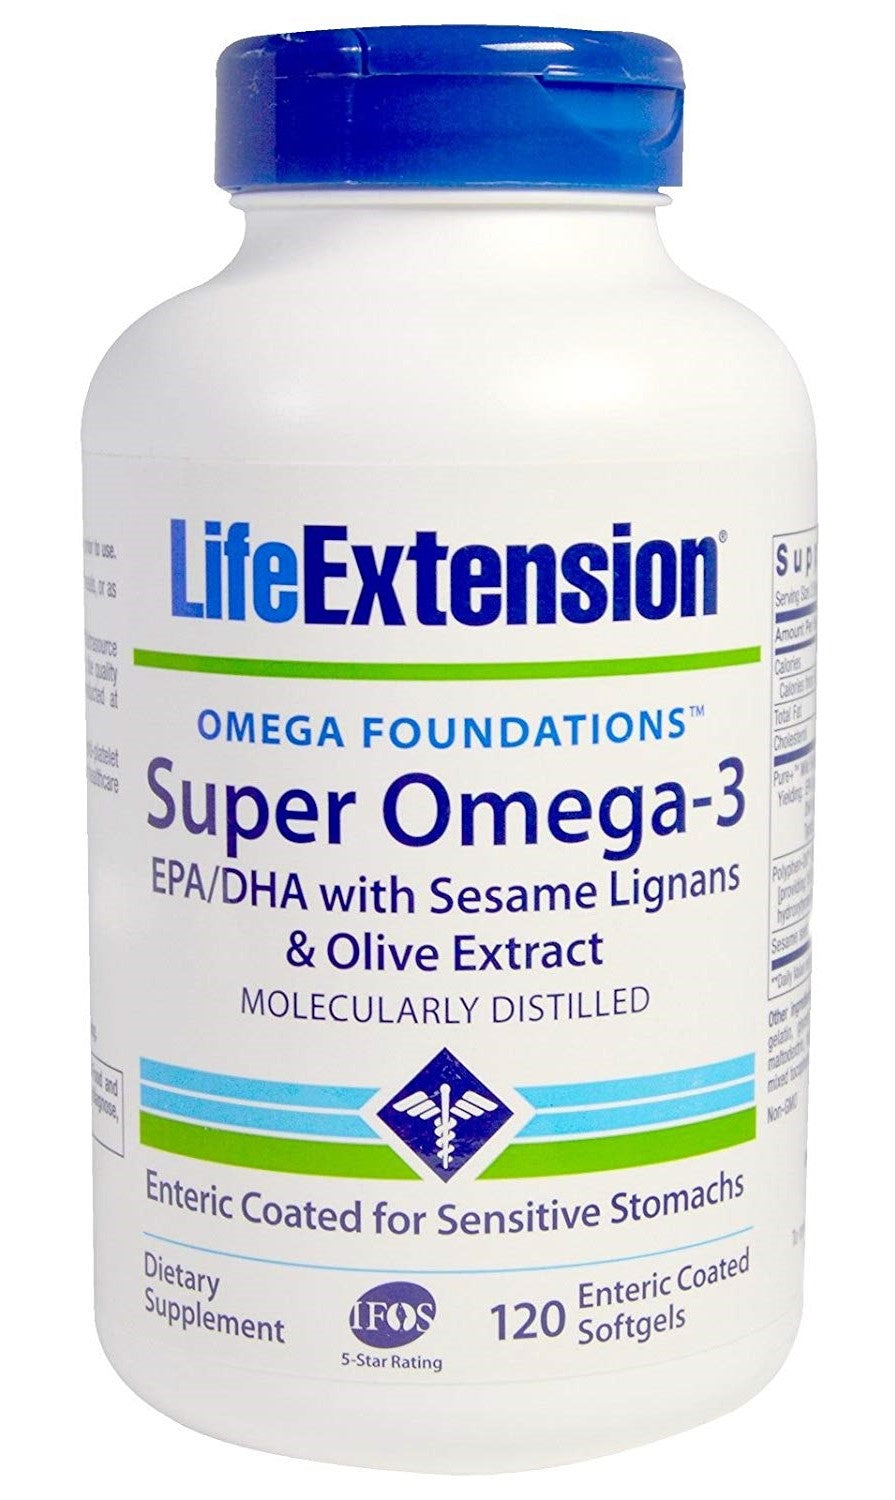 Super Omega-3 EPA/DHA with Sesame Lignans & Olive Extract - 120 softgels